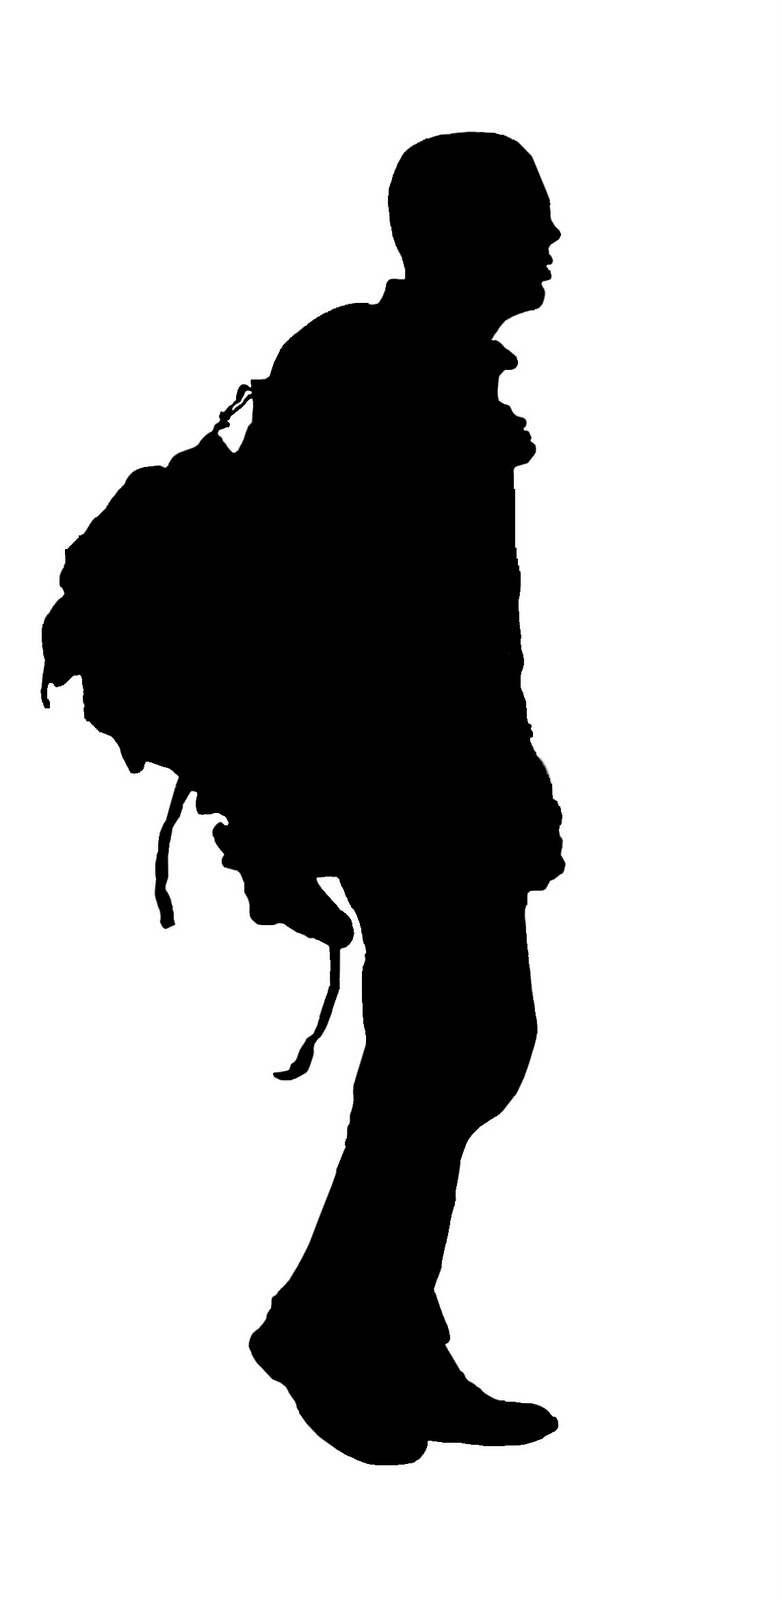 Man Front View Walking Silhouette Images - ClipArt Best